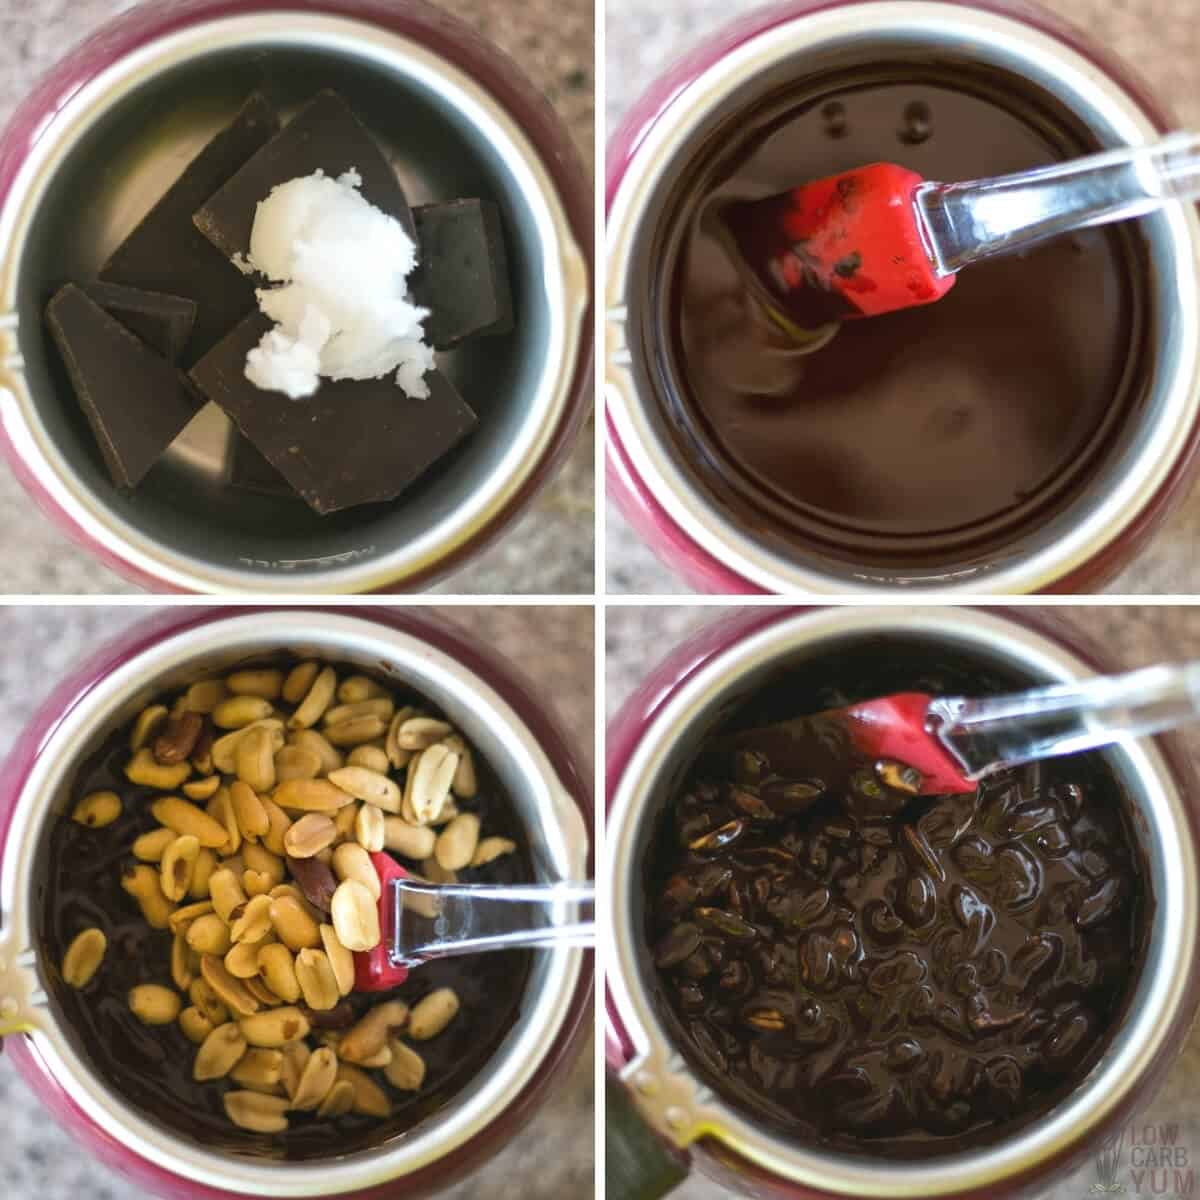 combining ingredients in a chocolate melter